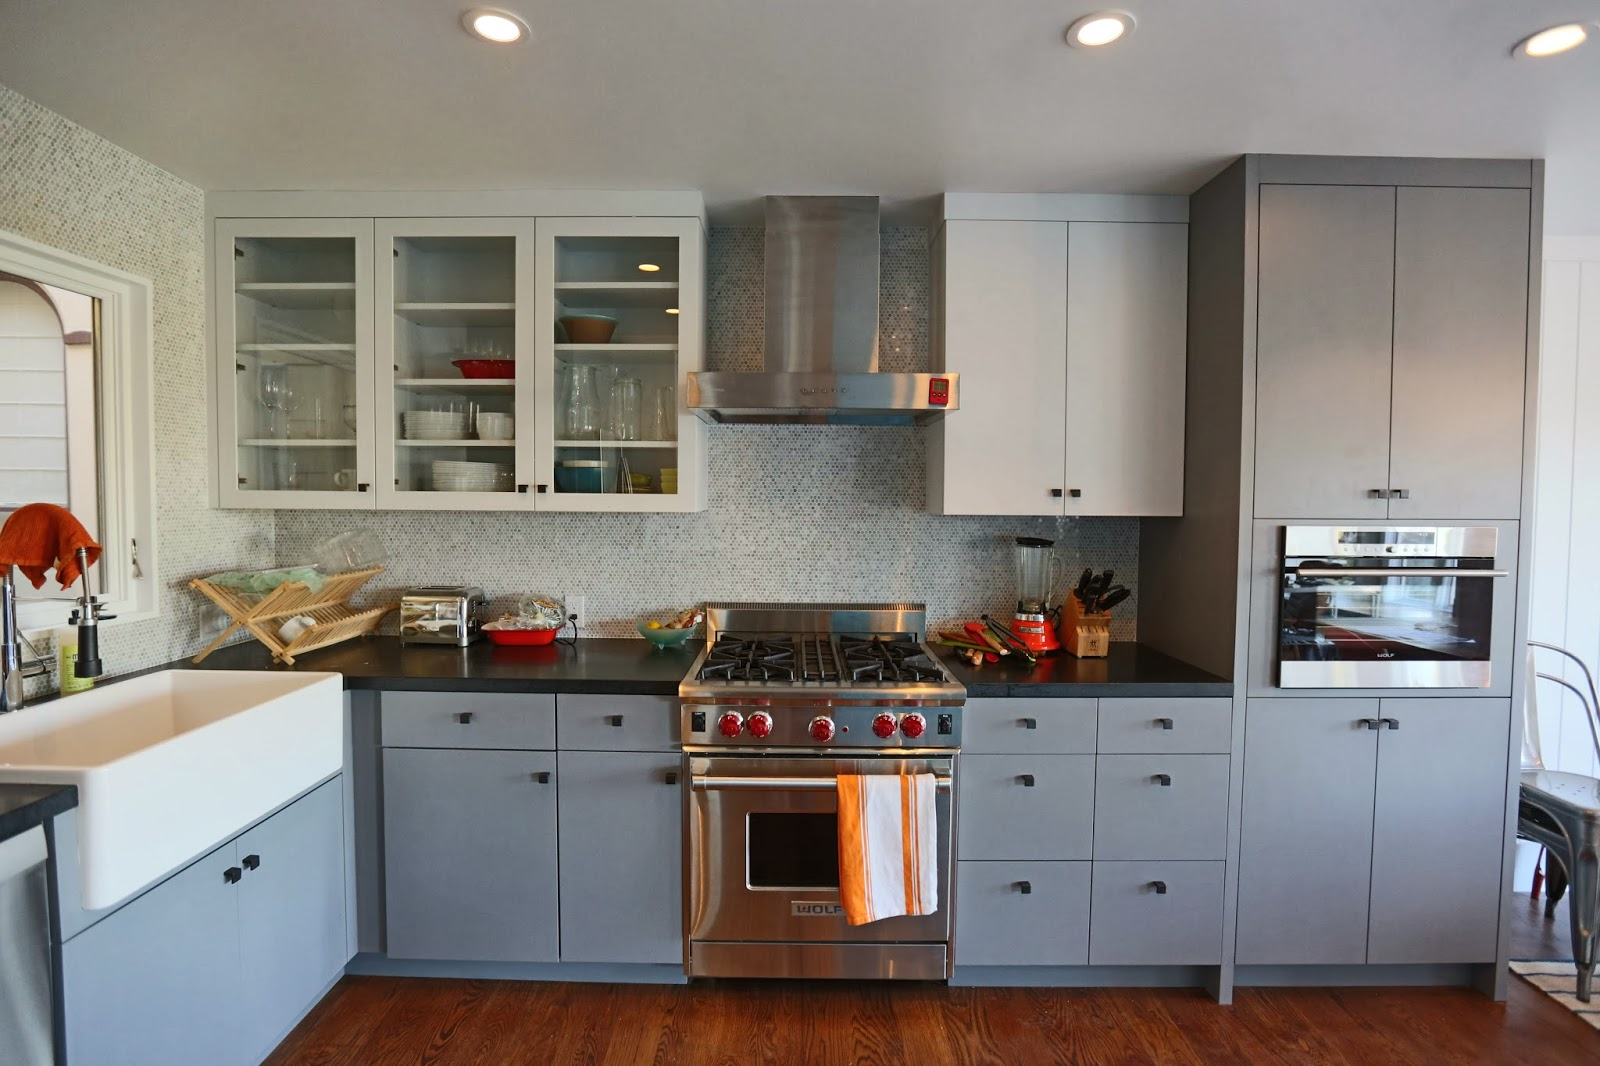 duboce park residence san francisco quality kitchen quality kitchen cabinets in san francisco ca 94103